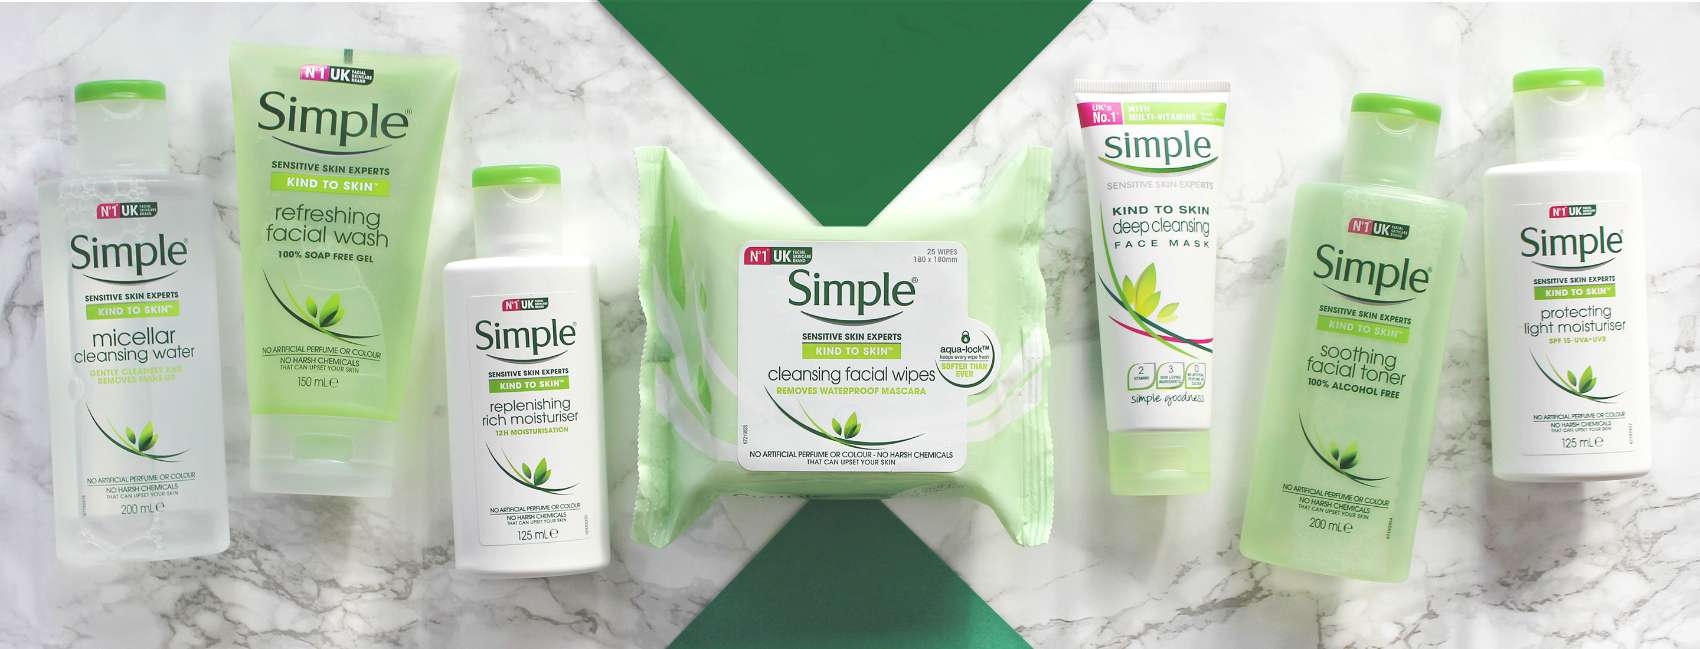 Simple Your daily skincare routine BANNER